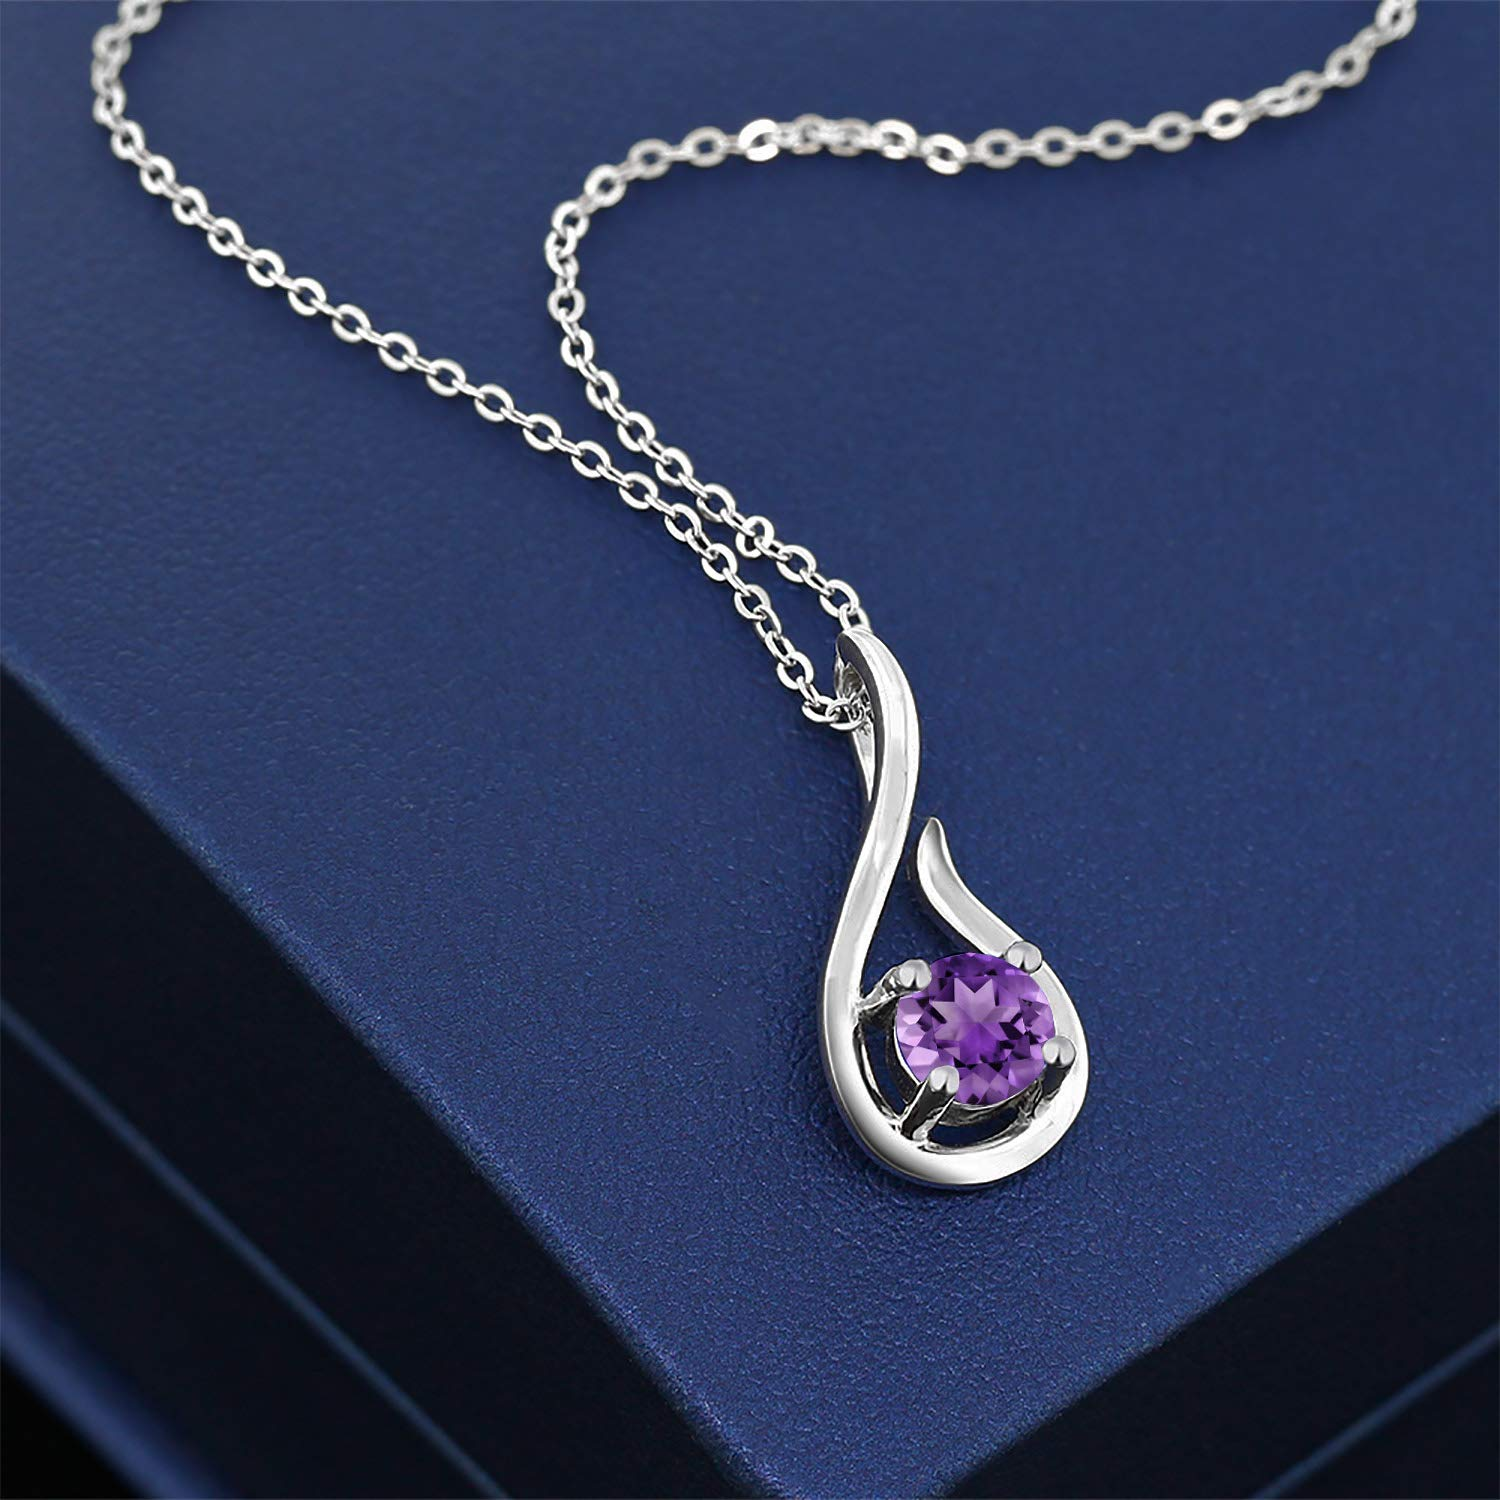 Gem Stone King 925 Sterling Silver Gemstone Birthstone Raindrop Pendant Necklace With 18 Inch Silver Chain